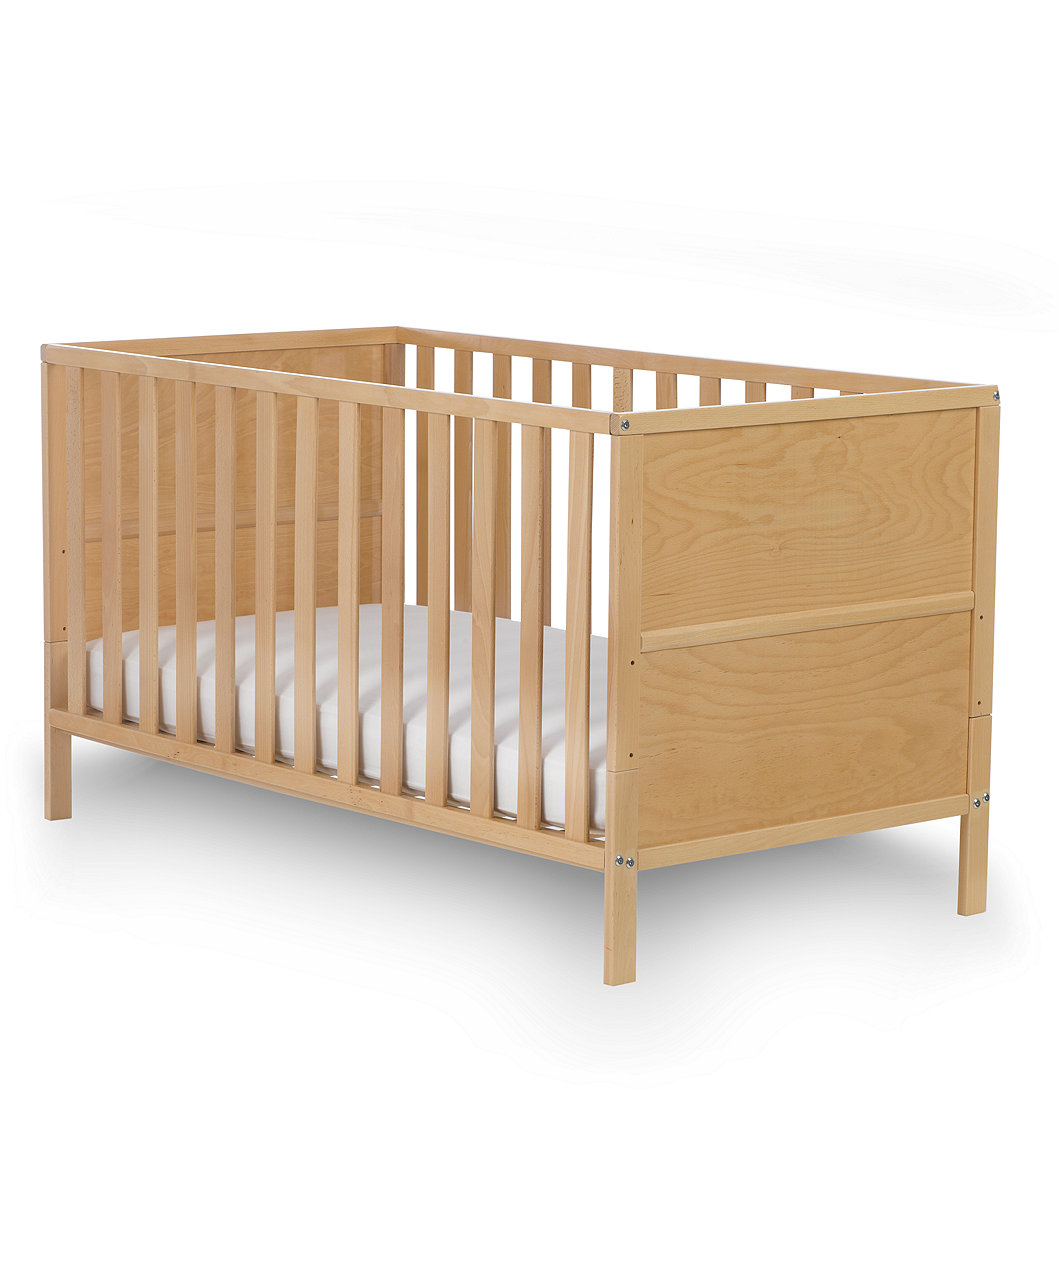 Mattress Cot Bed Mothercare